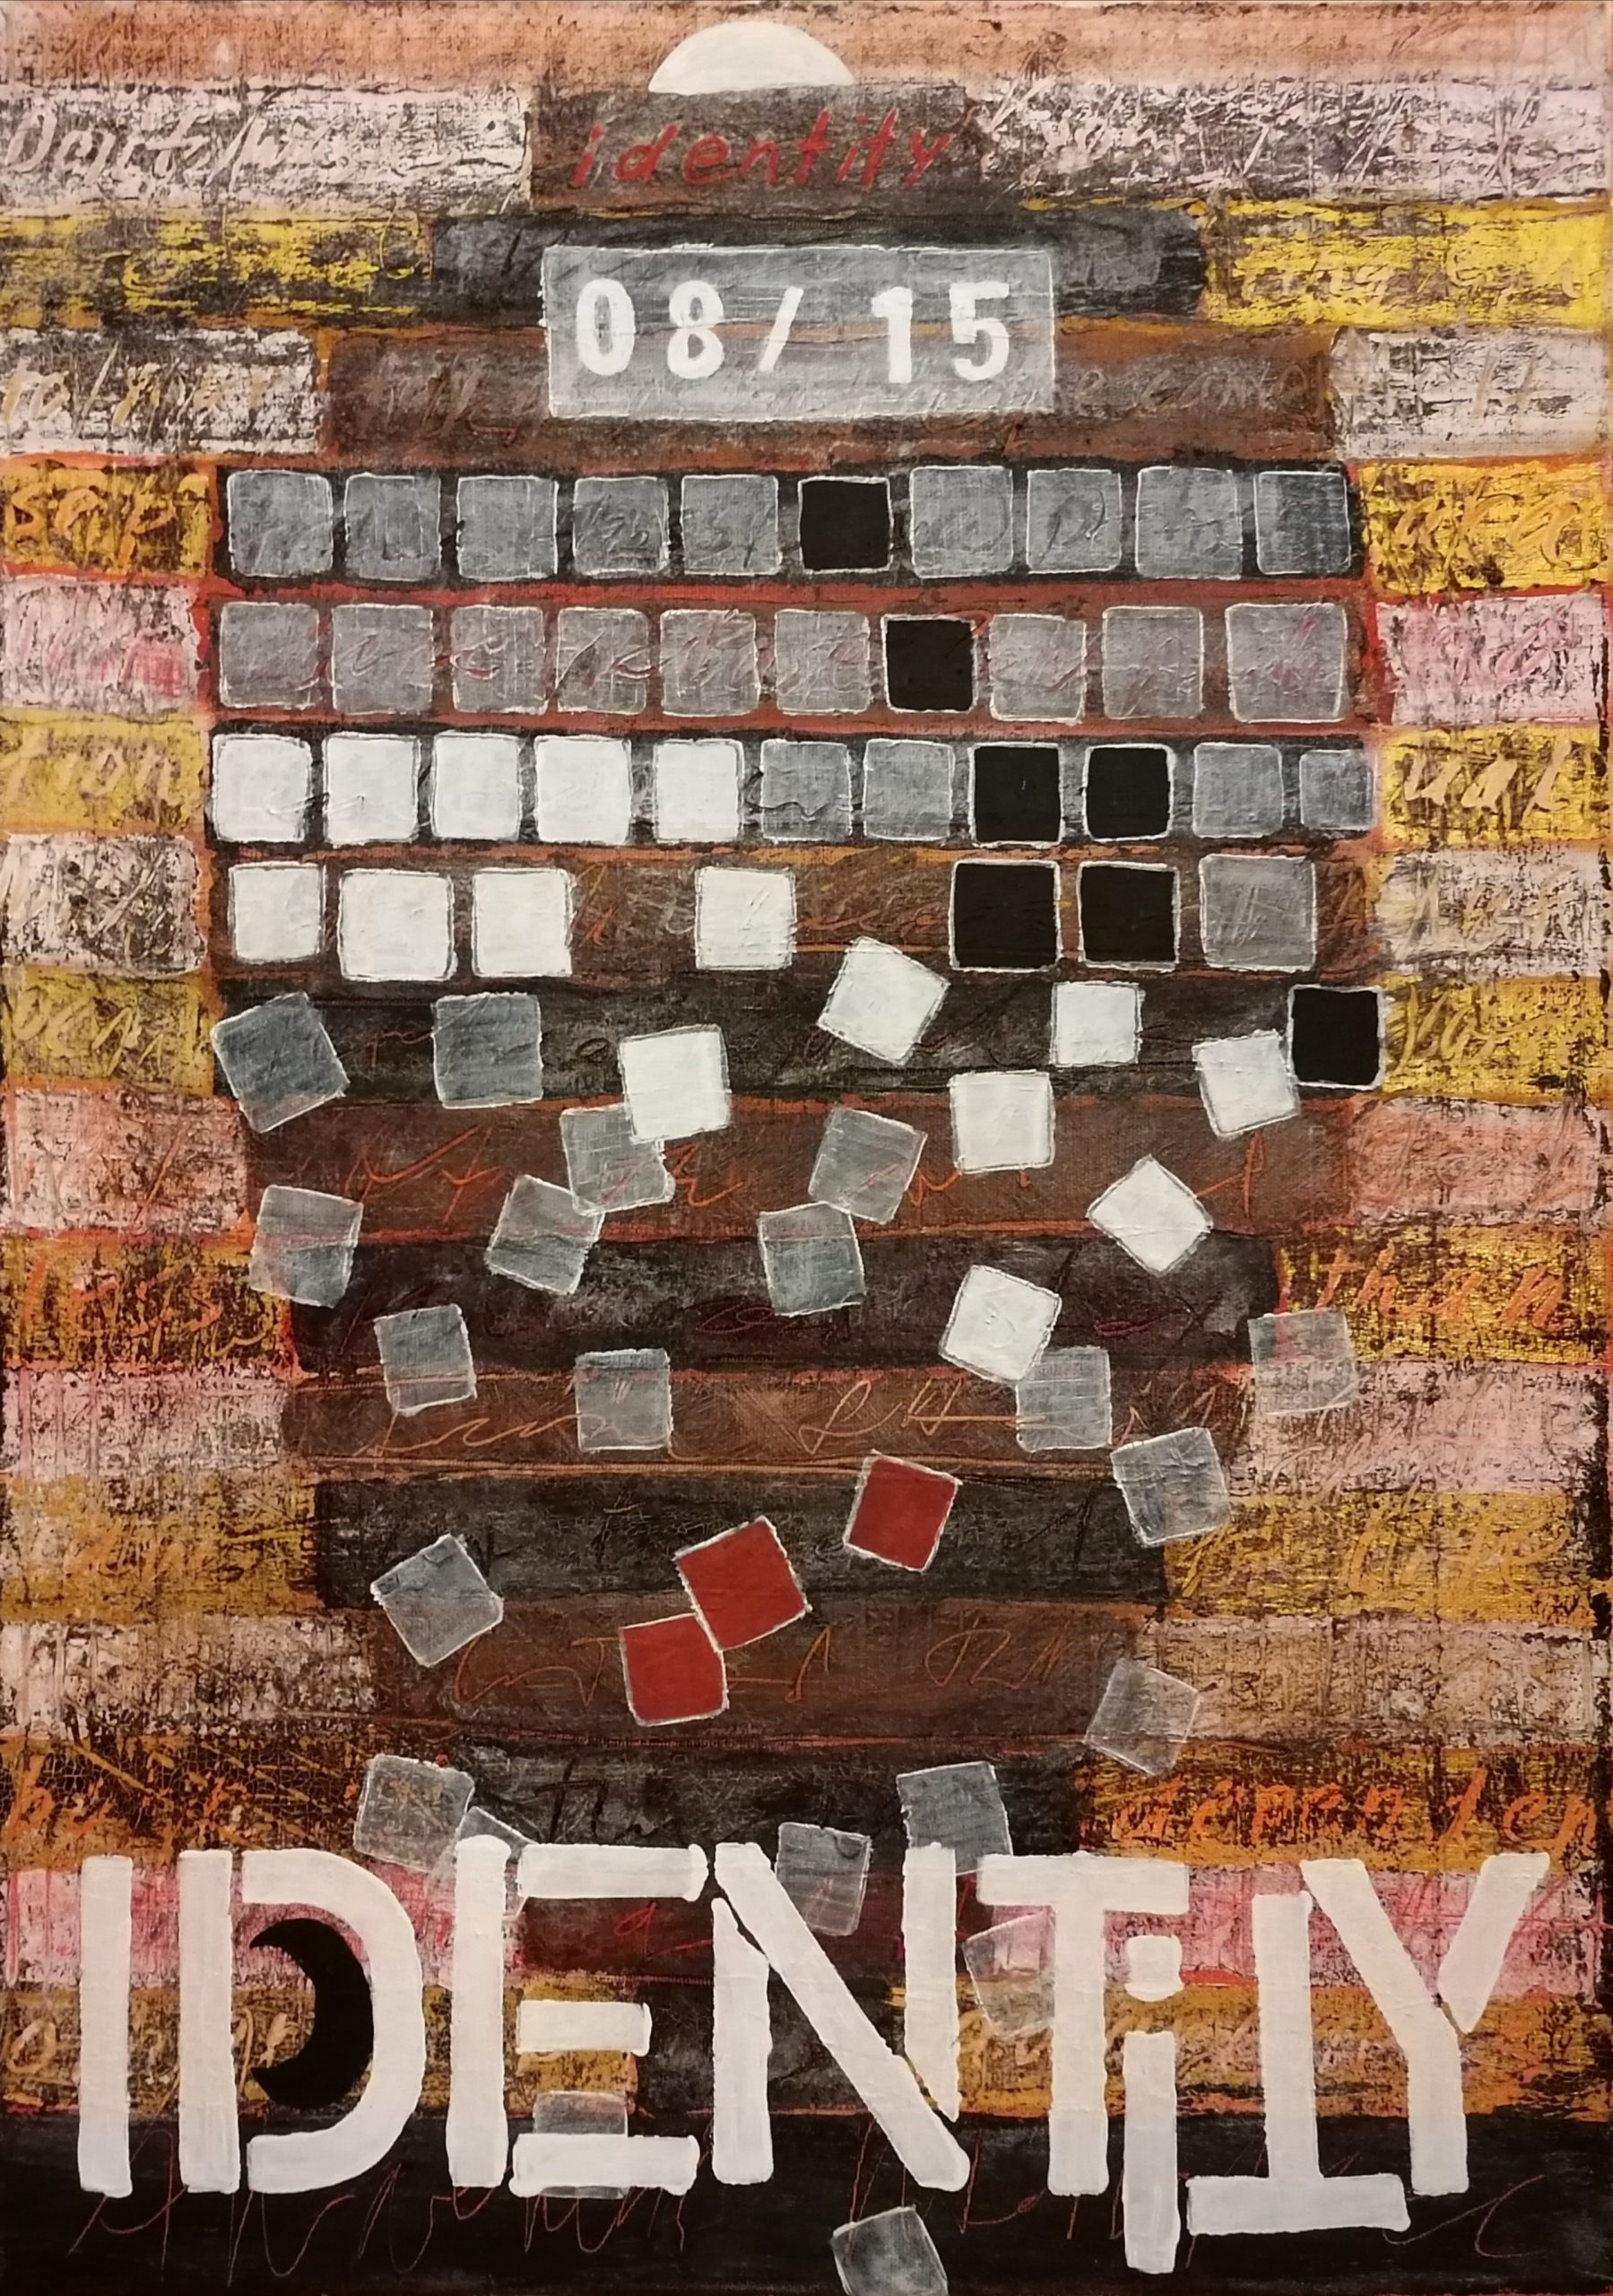 IDENTITY (M. Sager, 2021. Mixed media on canvas, 50 x 70 cm)